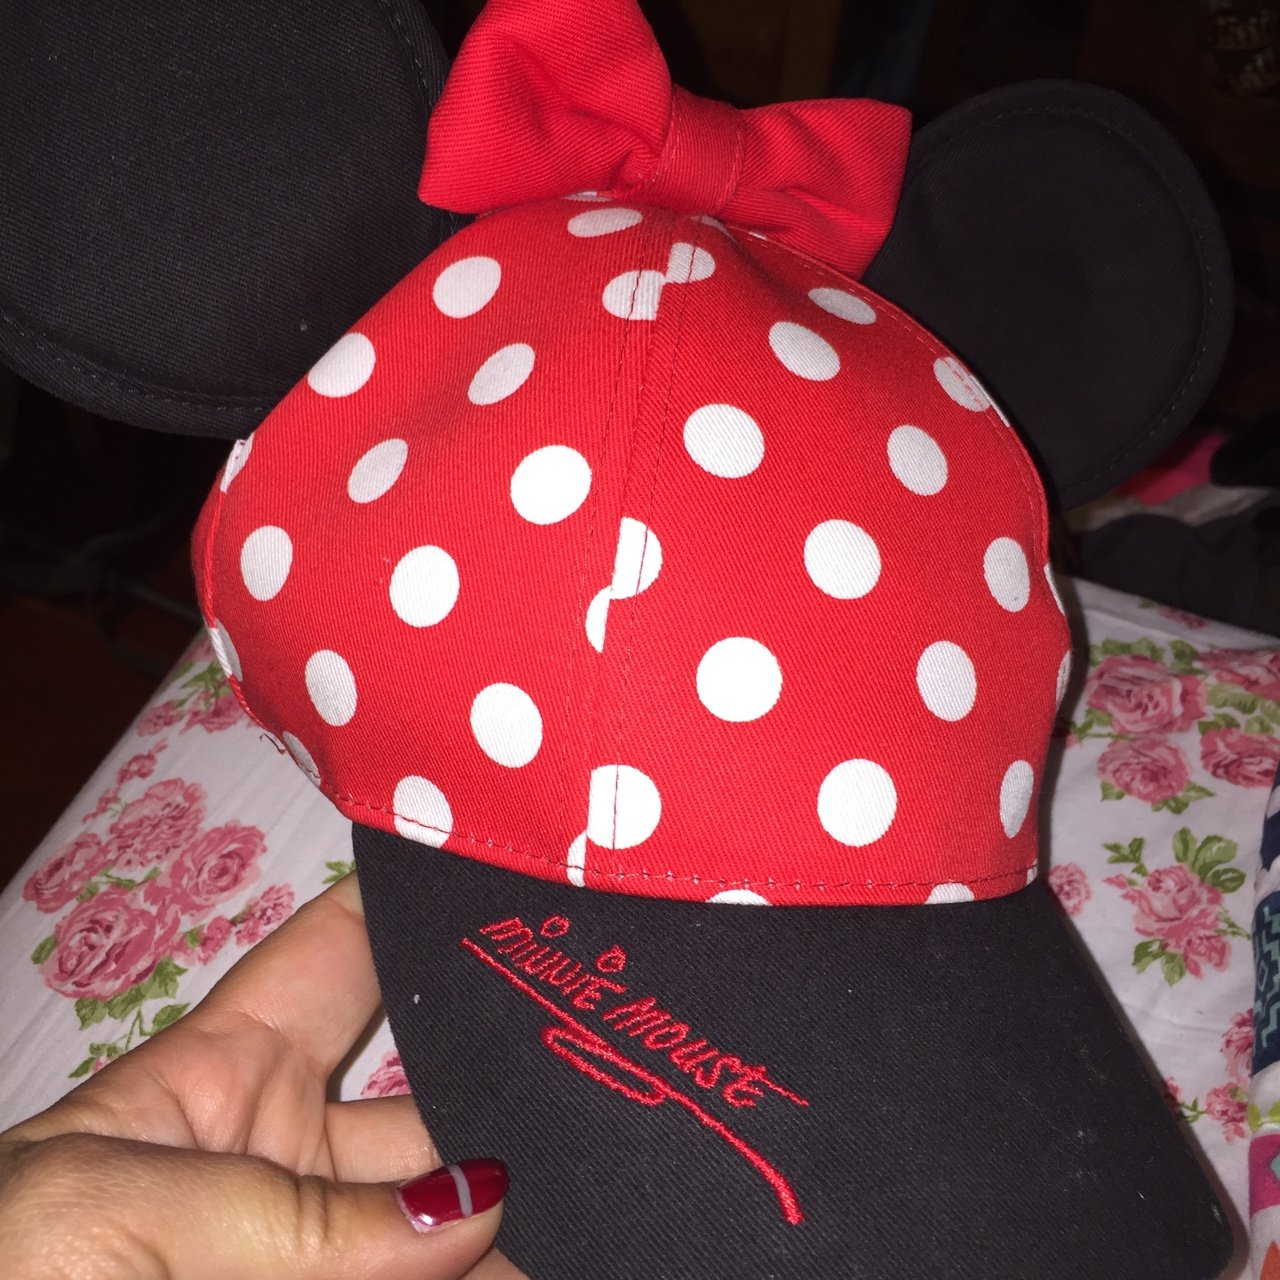 Brand new never worn Minnie mouse polka dot hat! 🐭❤ Never - Depop b739ff3d5171